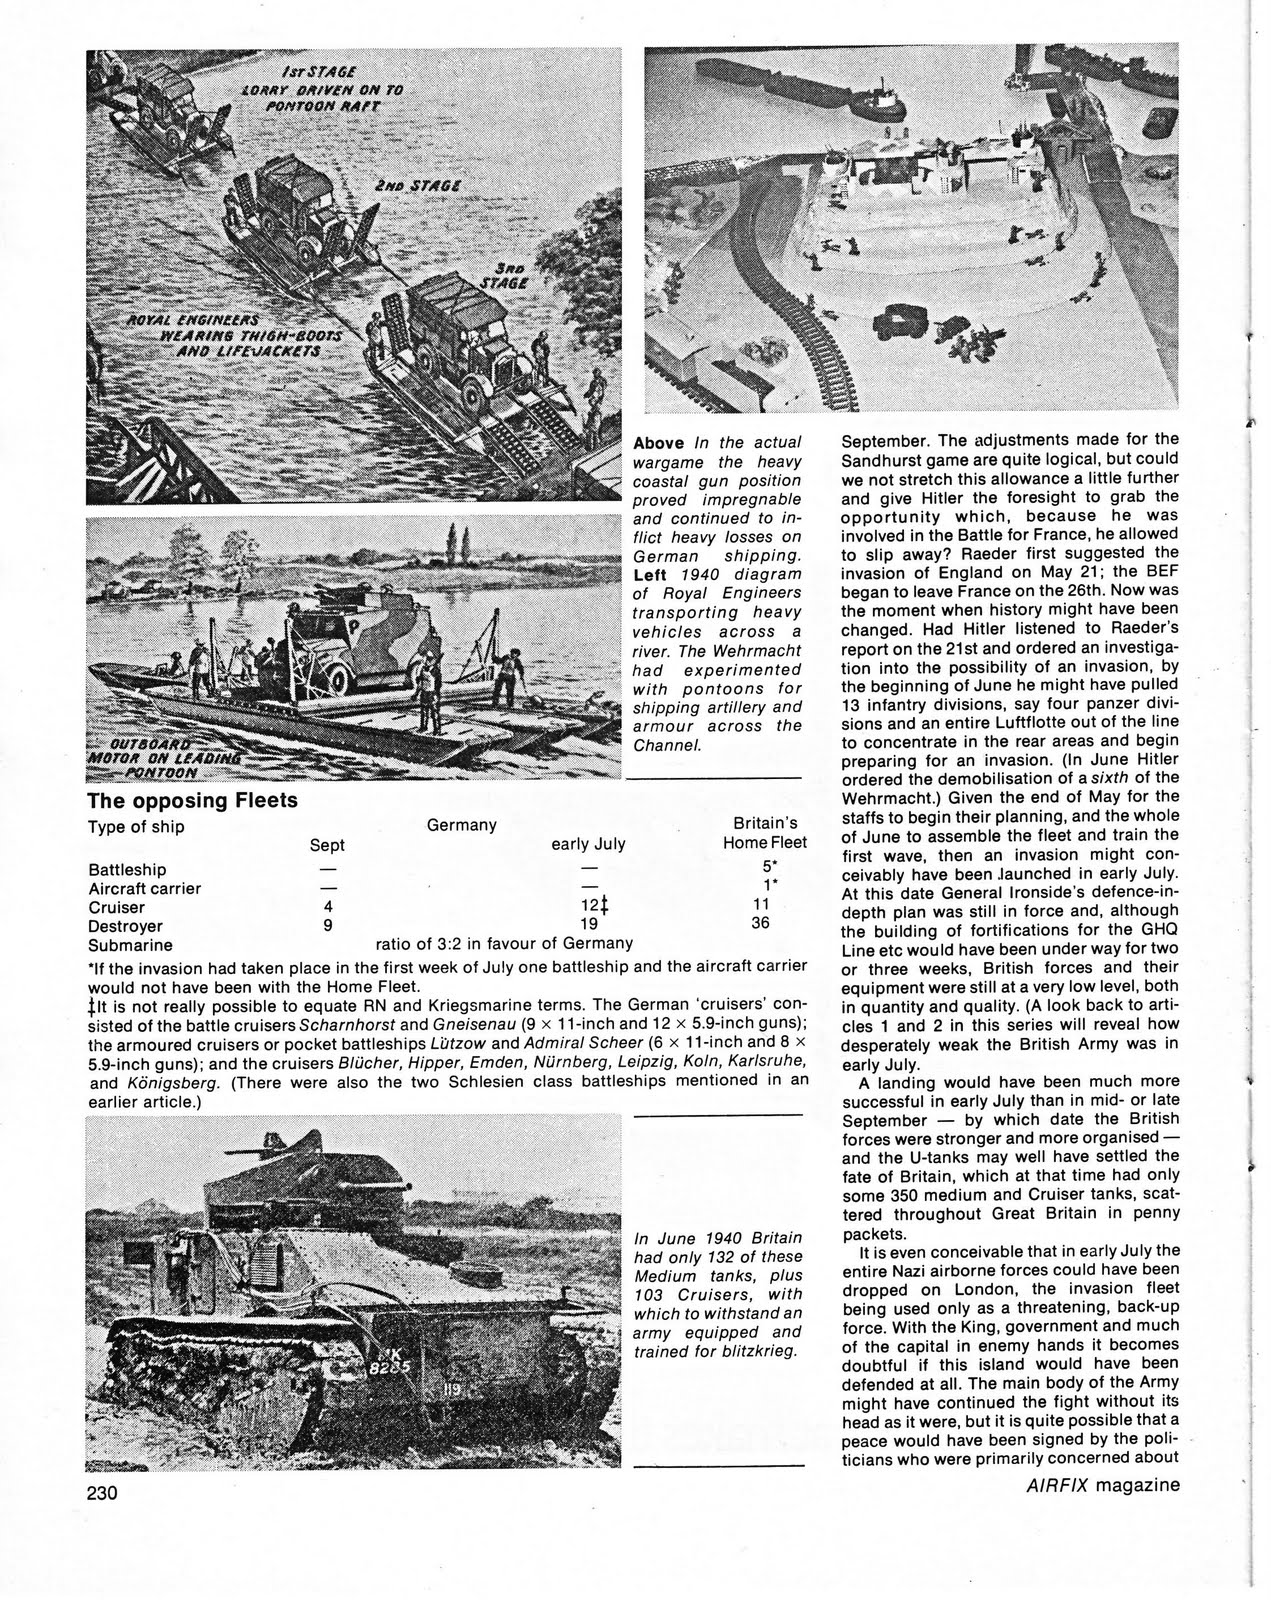 vintage wargaming wargaming operation sealion by terry wise from rh vintagewargaming blogspot com Airfix Magazine Subscription airfix magazine guides russian tanks pdf